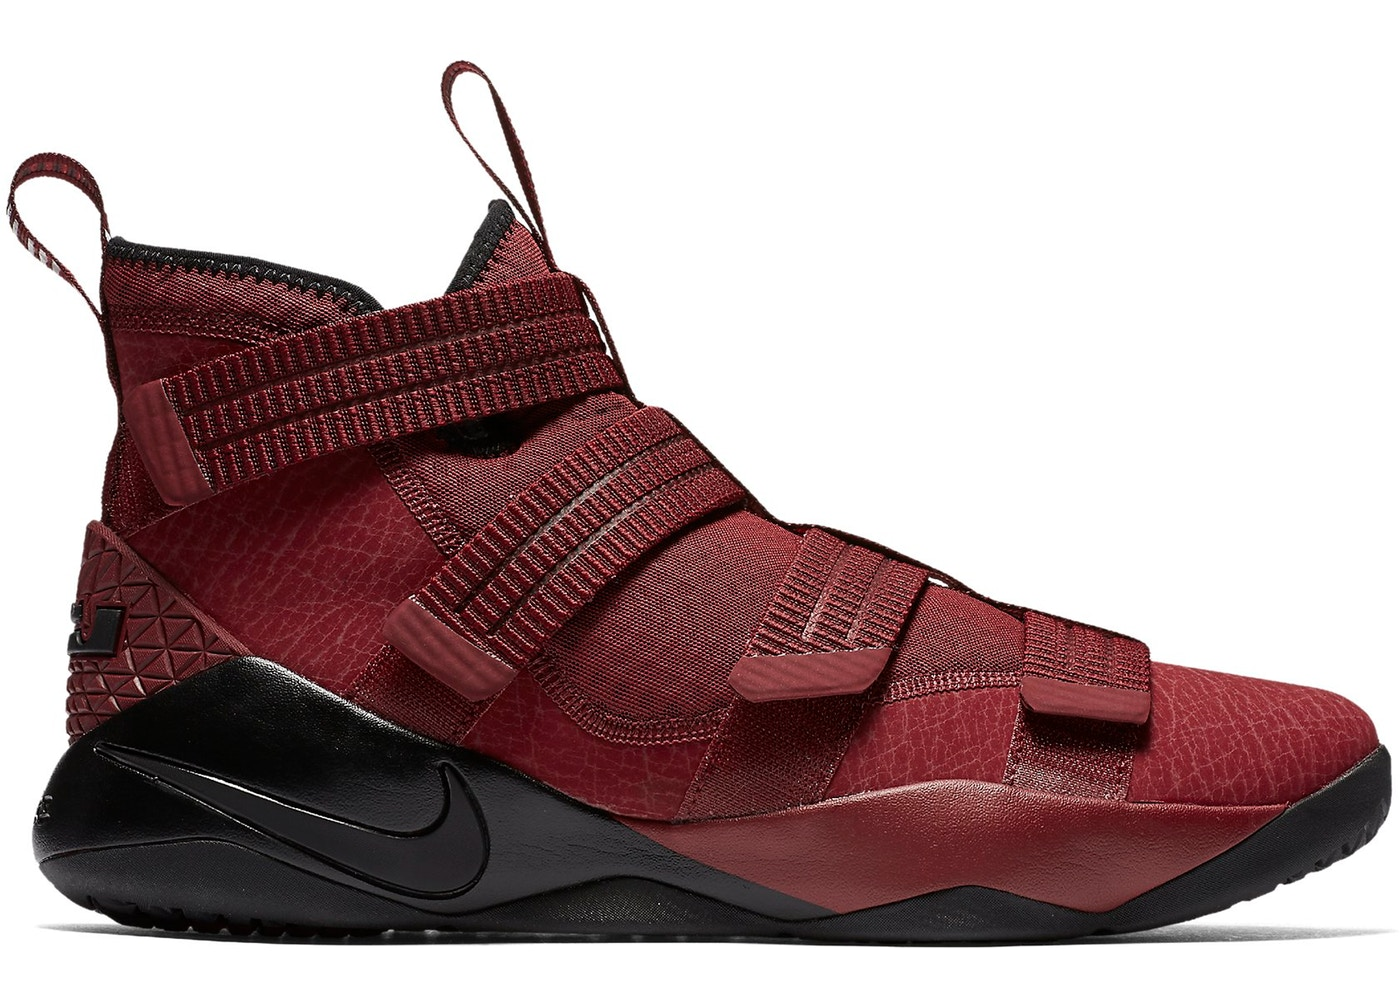 21b4be443a51a LeBron Zoom Soldier 11 Burgundy - 897646-600